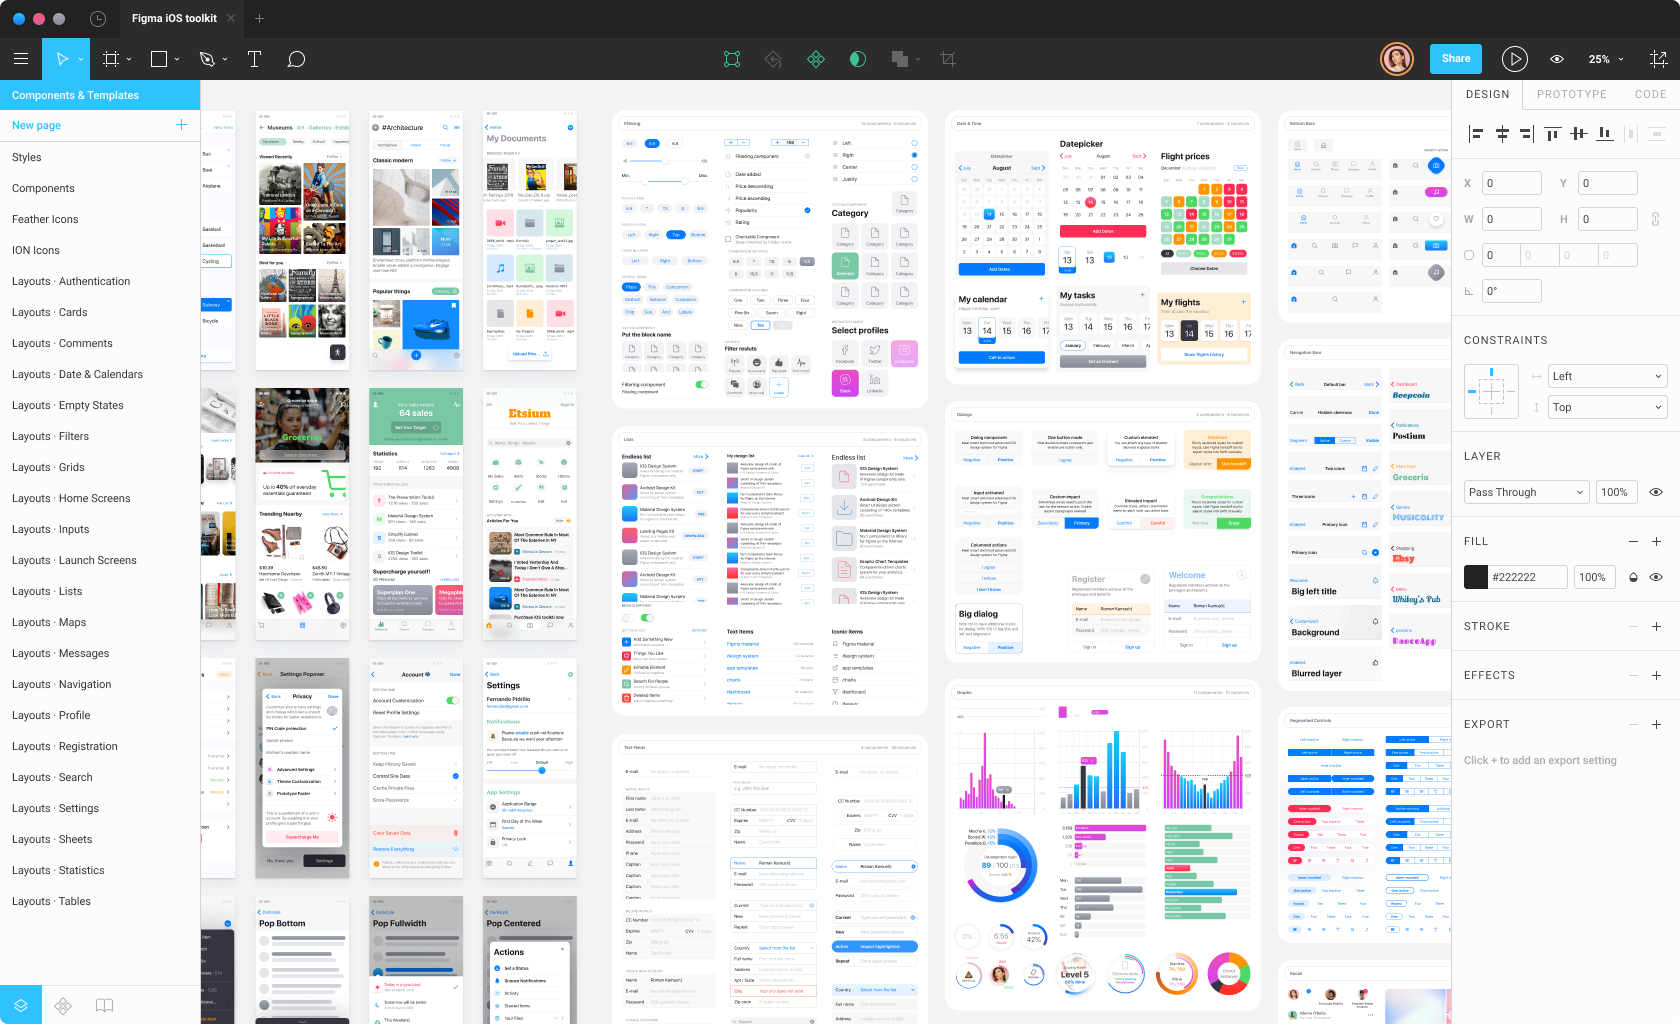 The Best UX Design Tools in 2019 - UX Collective